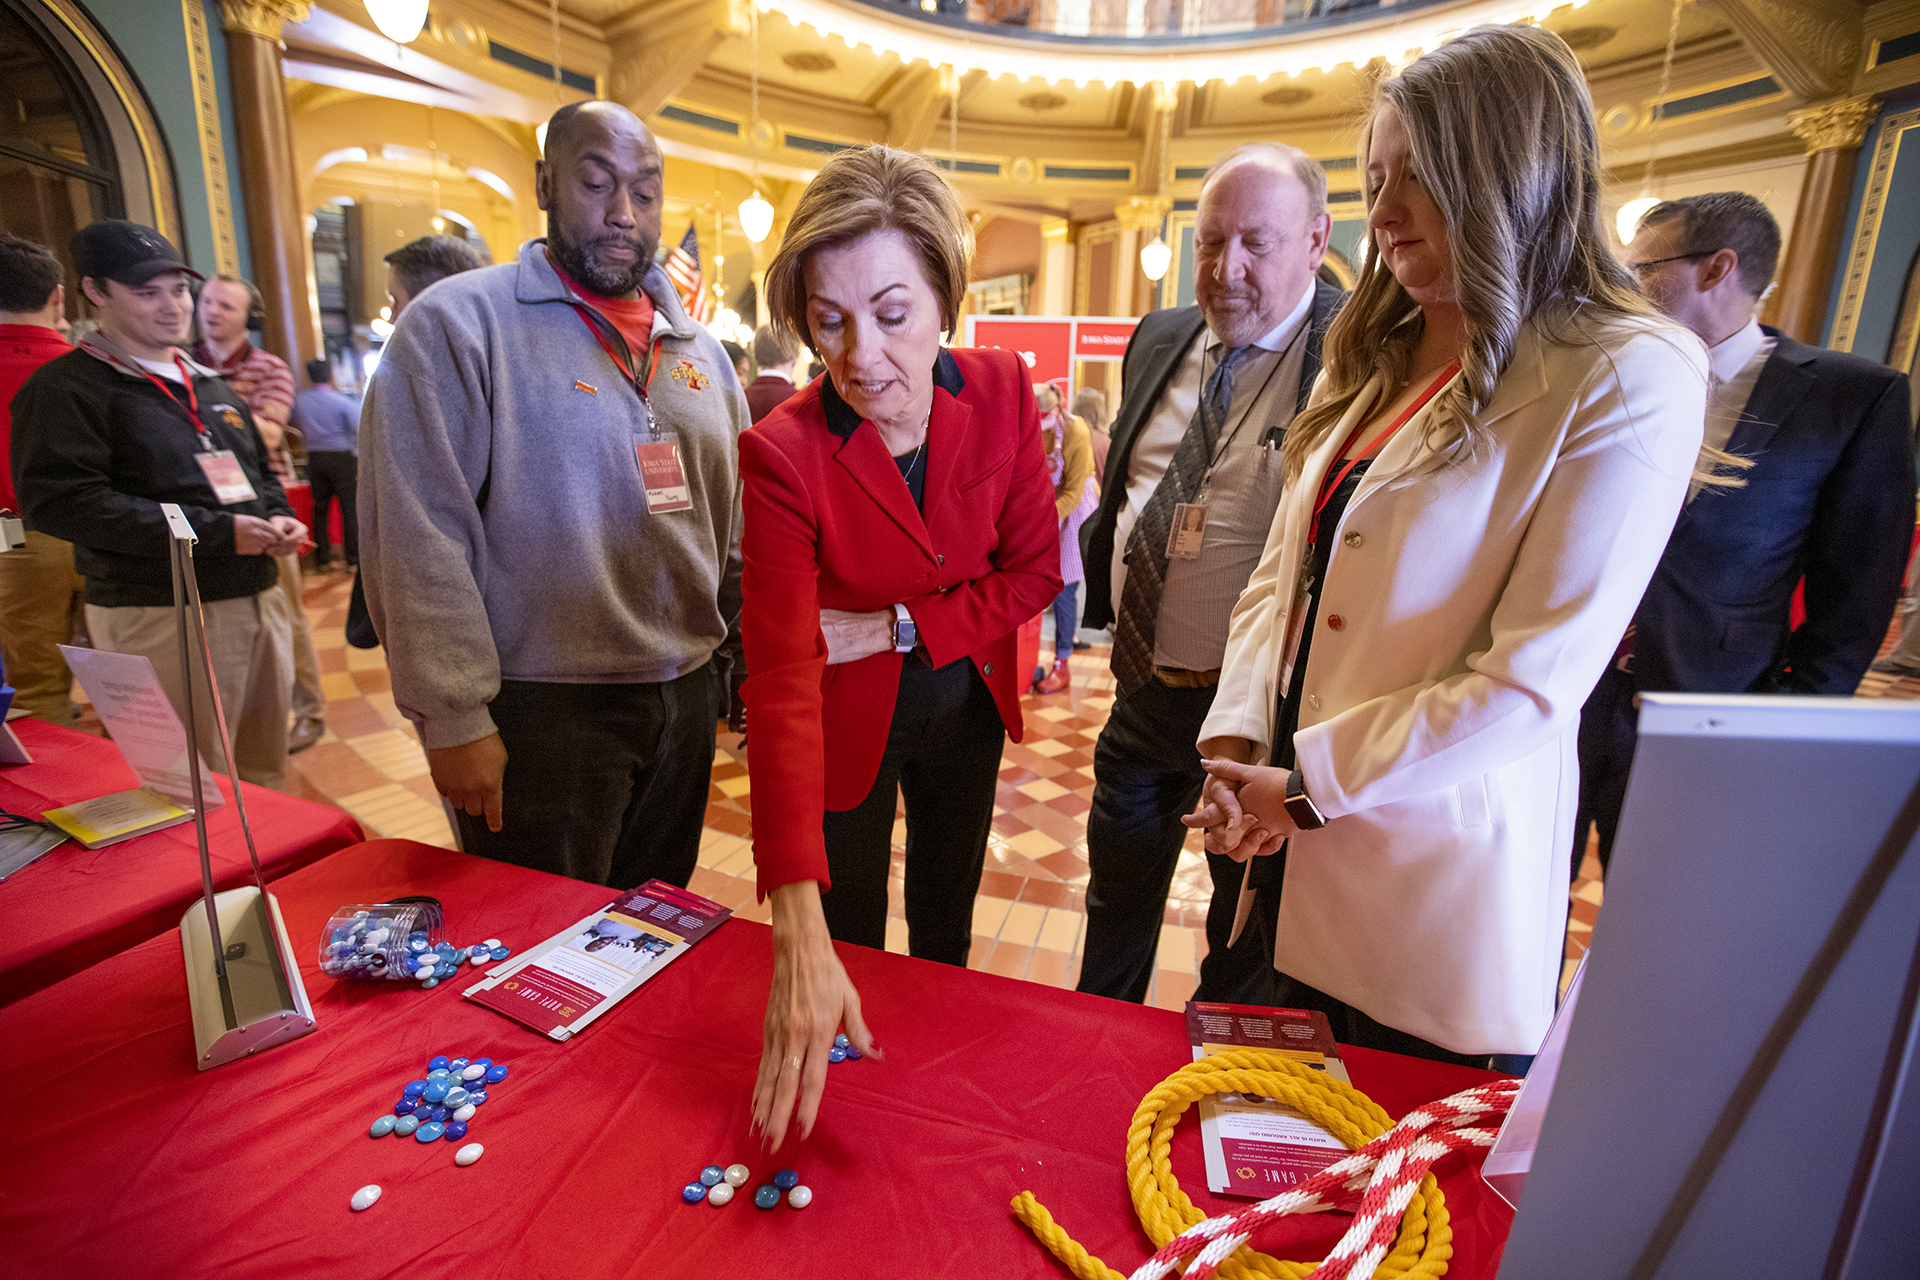 Michael Young shows Gov. Kim Reynolds how to play an interactive math game